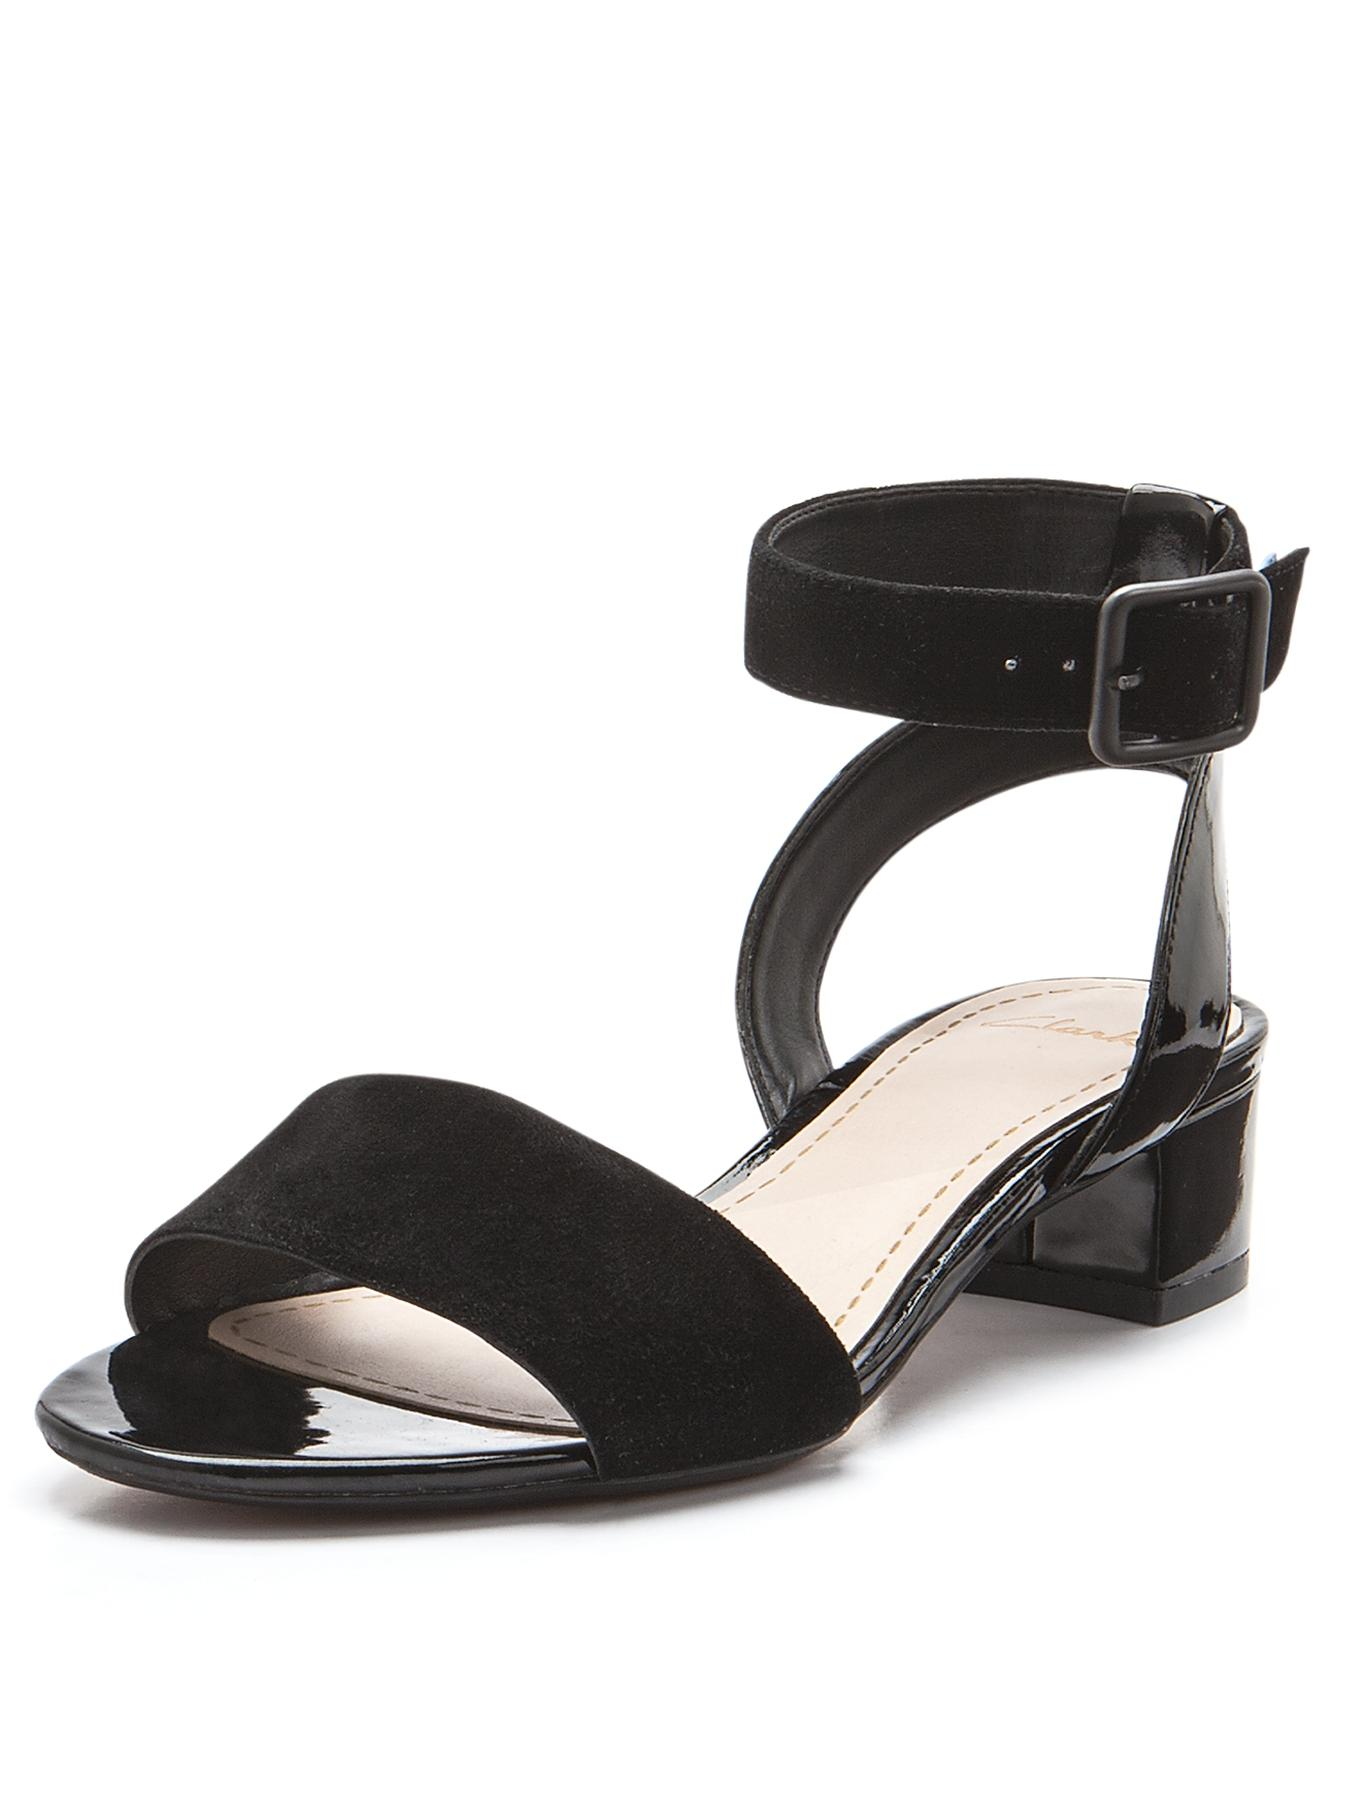 Clarks Sharna Balcony Sandals - Black, Black